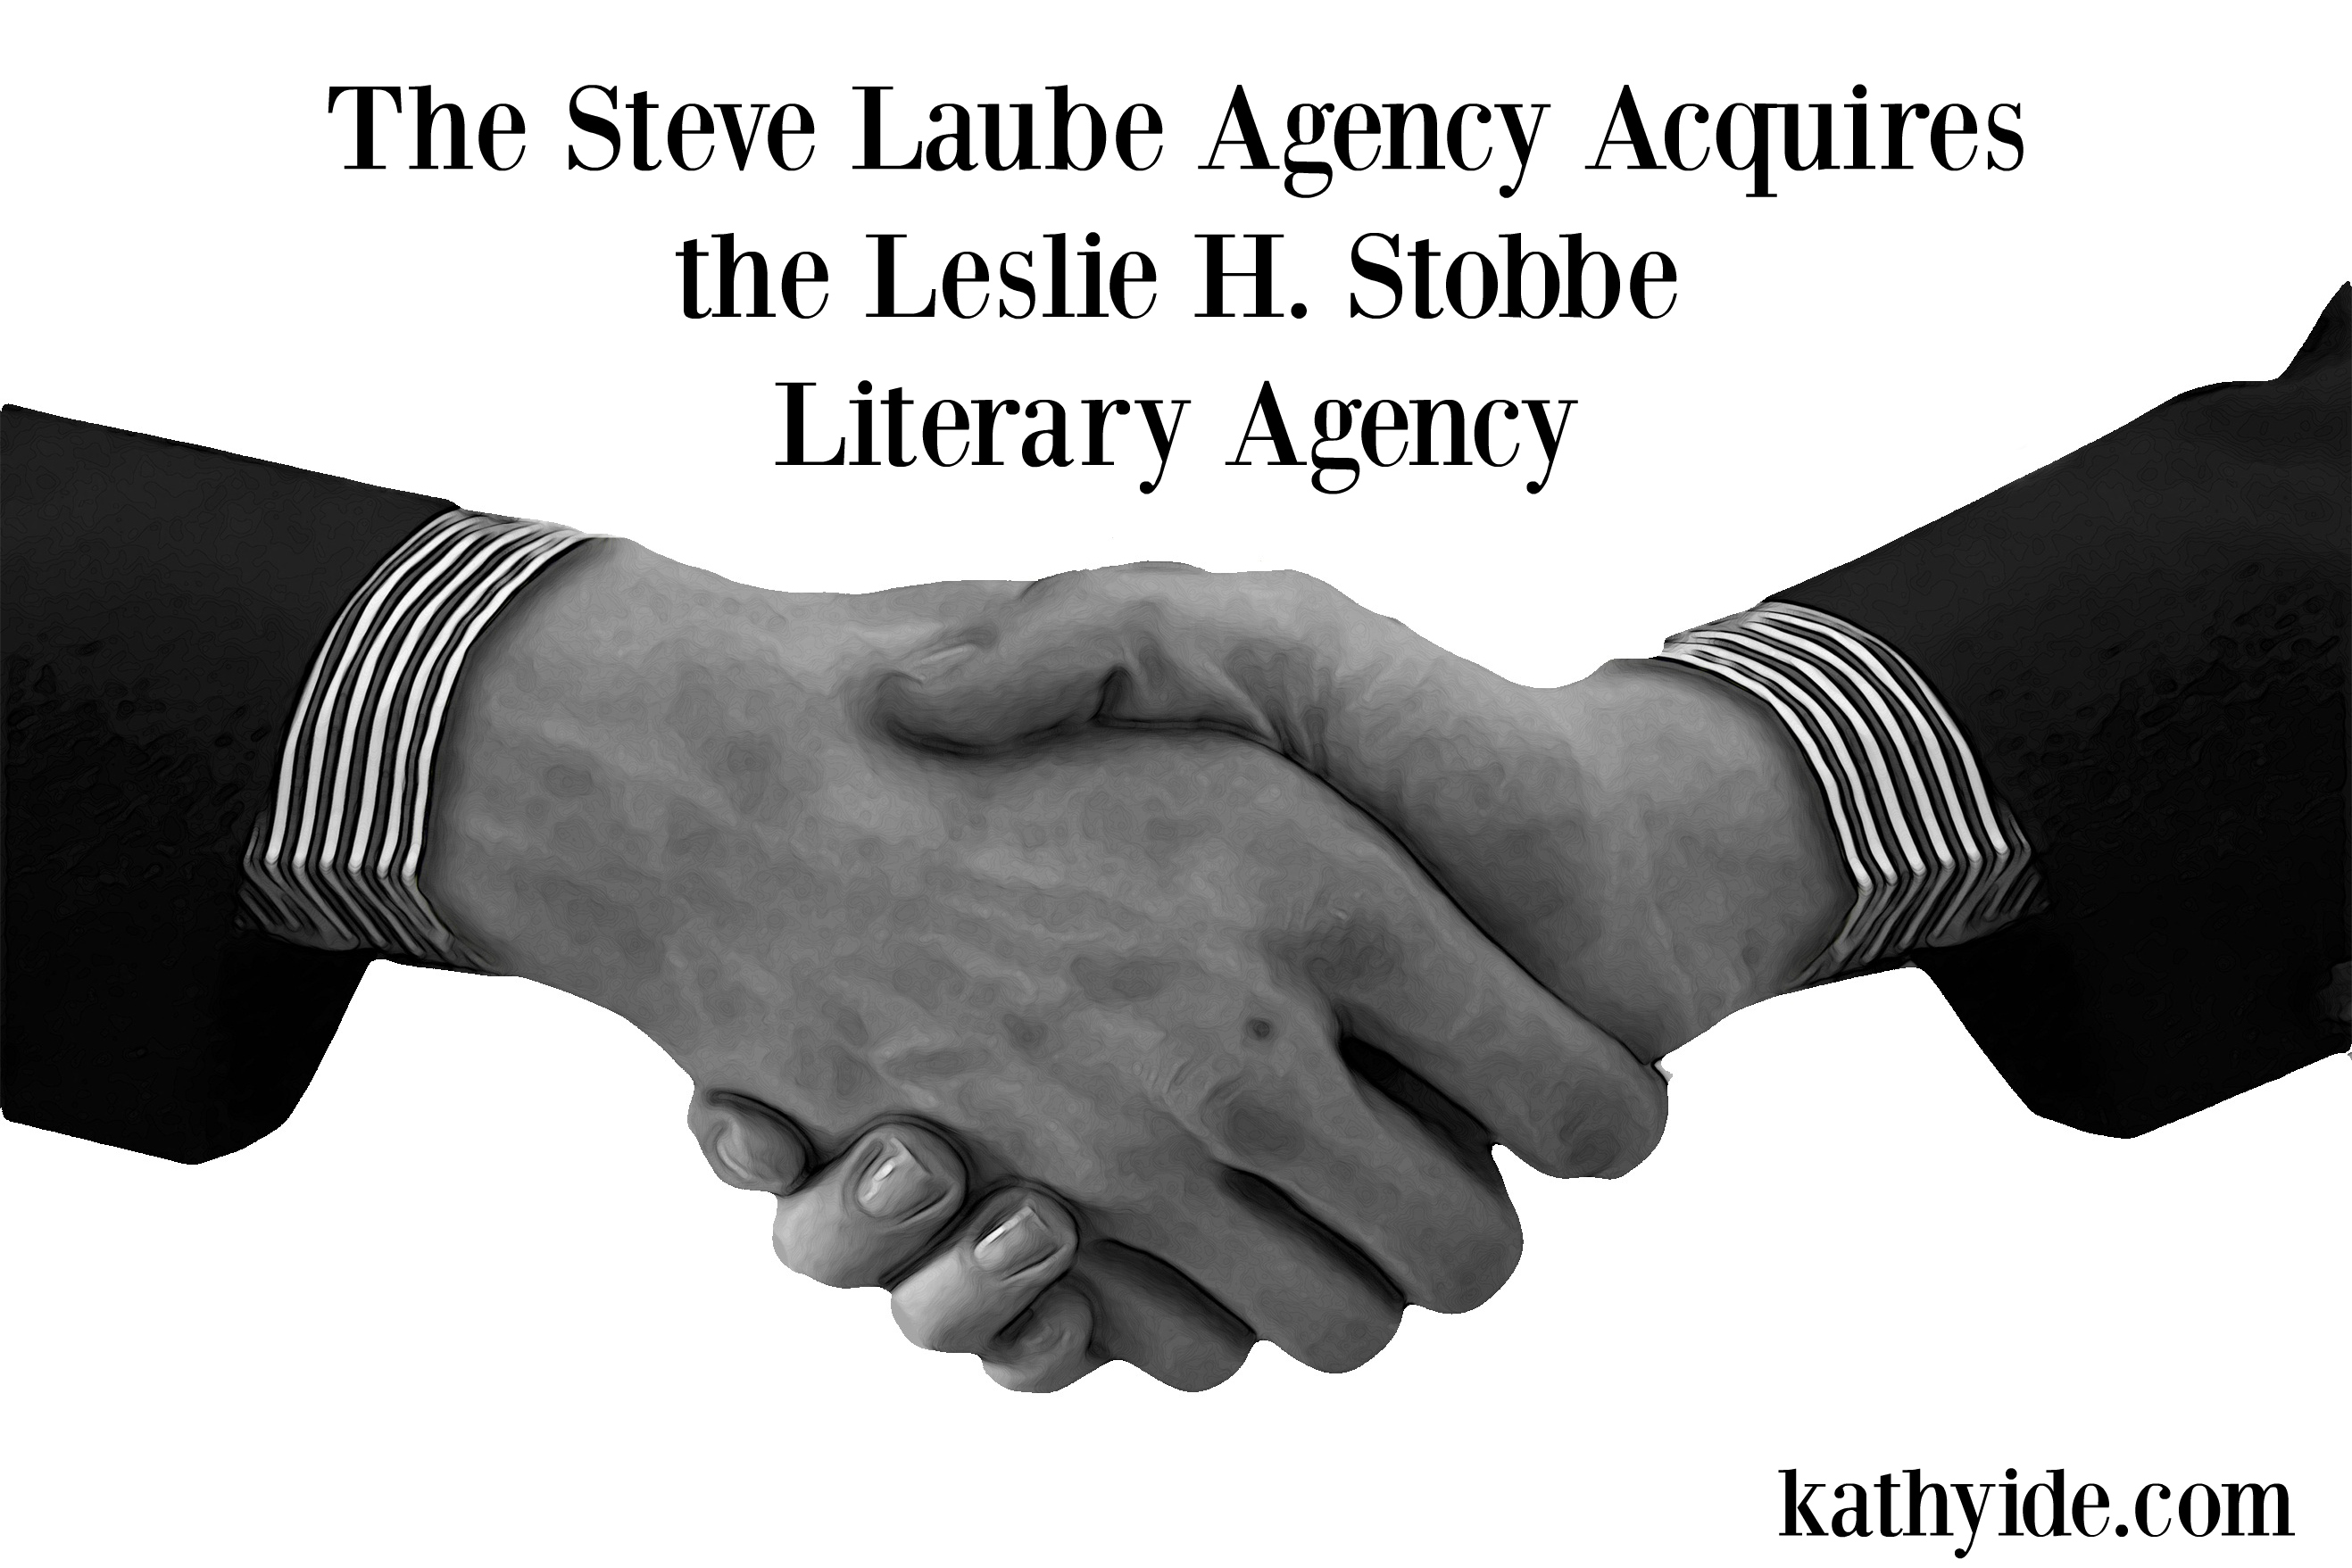 The Steve Laube Agency Acquires the Leslie H. Stobbe Literary Agency